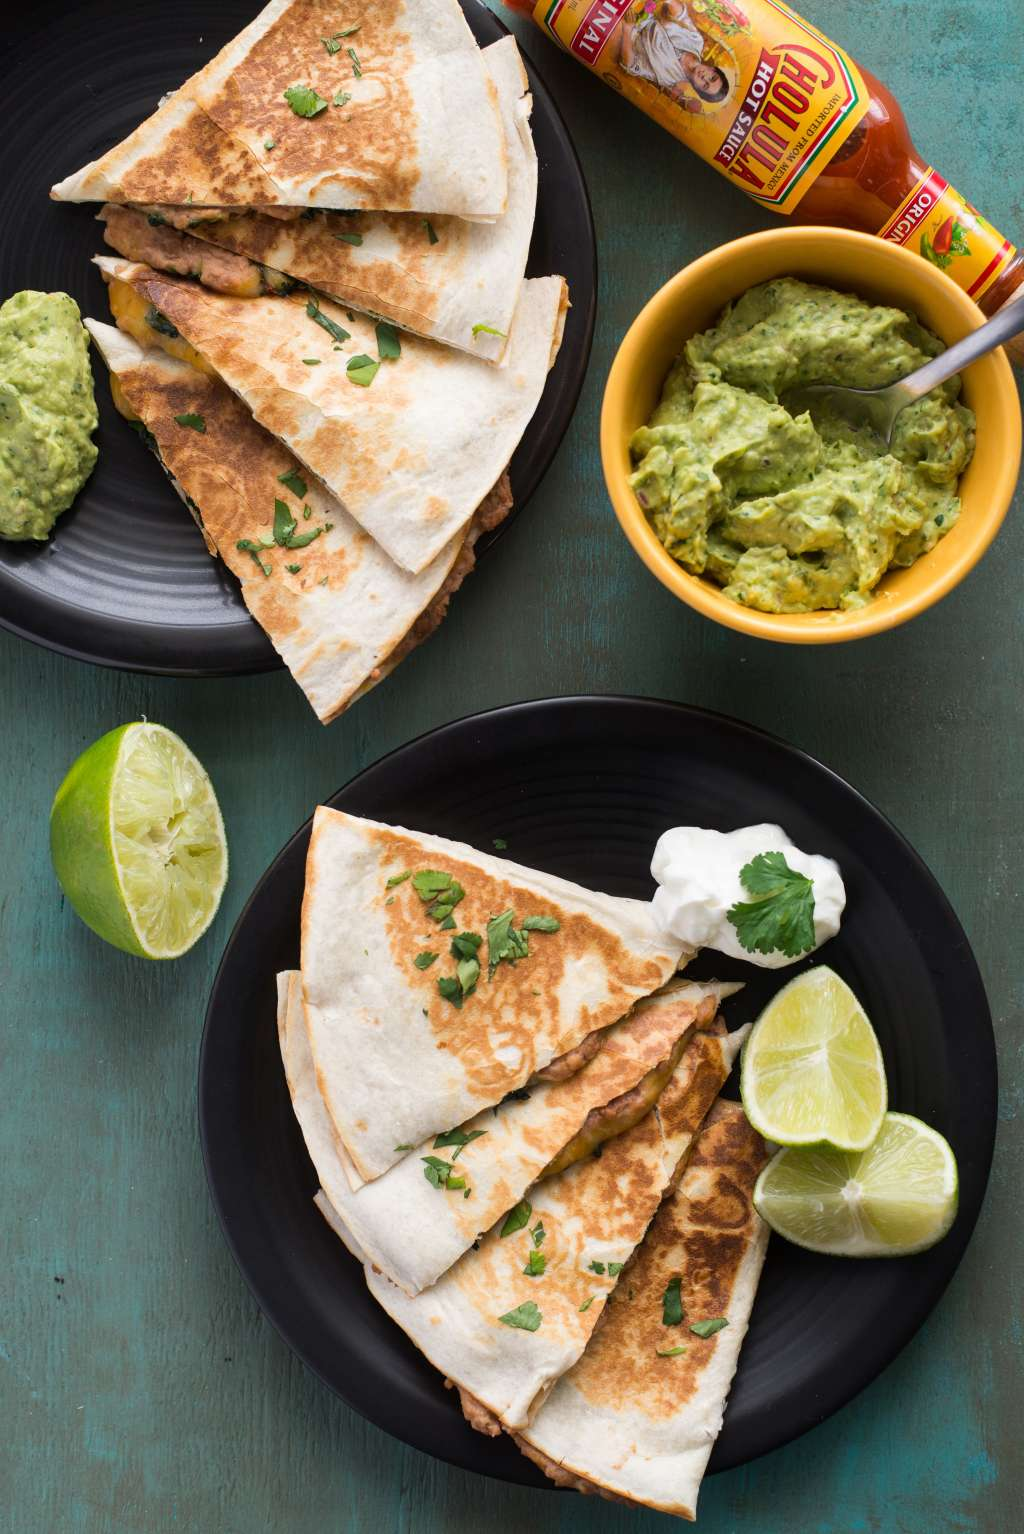 10 Delicious Ways to Turn Tortillas into a Meal